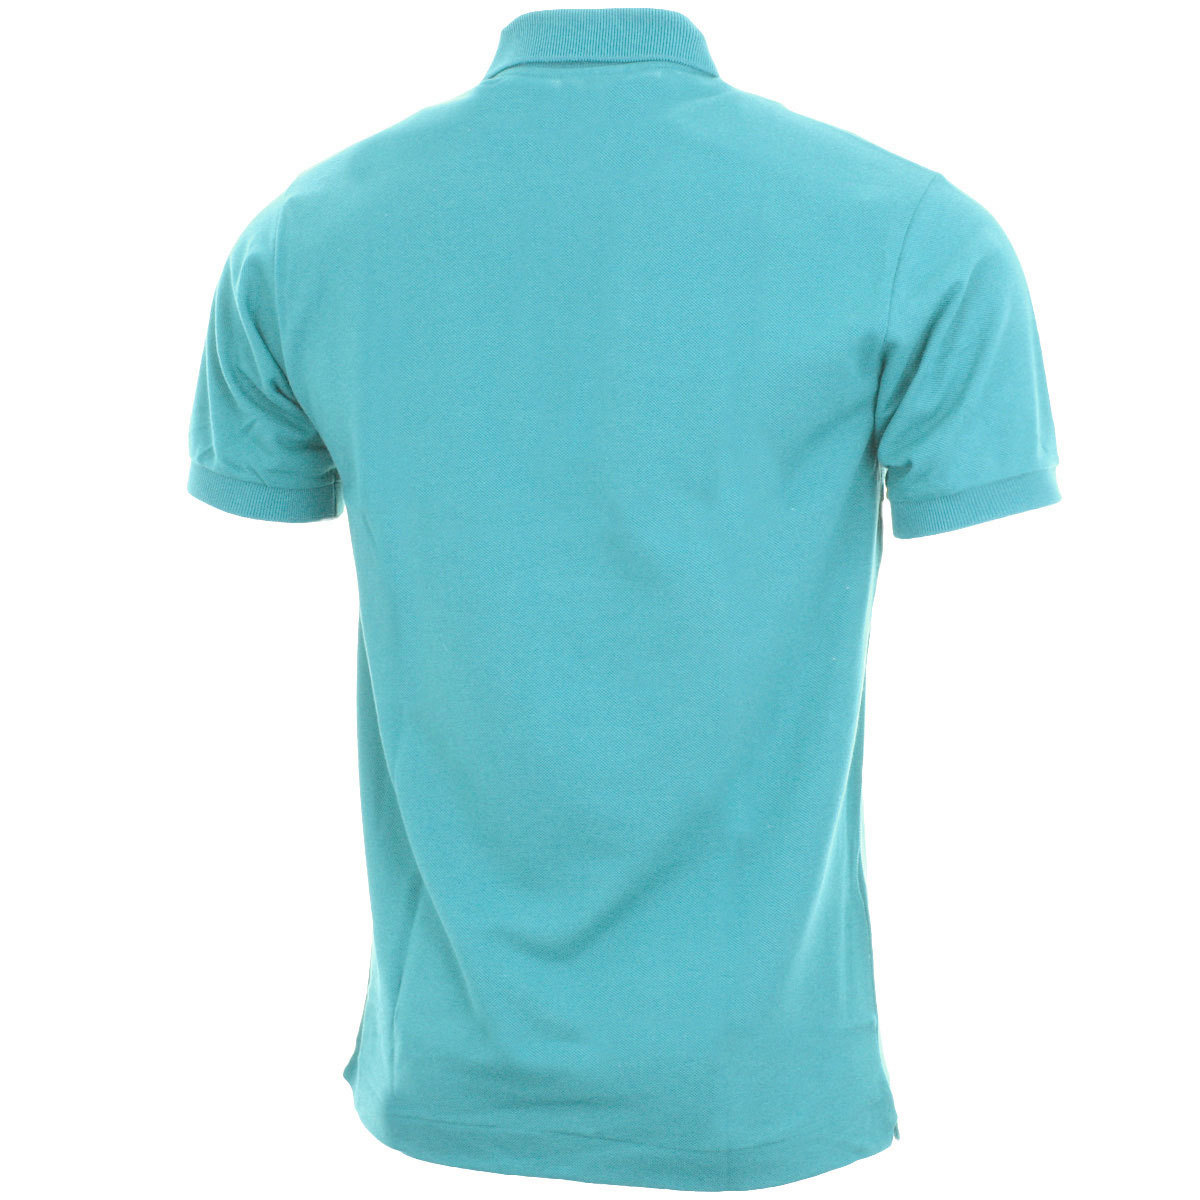 Lacoste-Mens-Classic-Cotton-L1212-Short-Sleeve-Polo-Shirt-31-OFF-RRP thumbnail 21